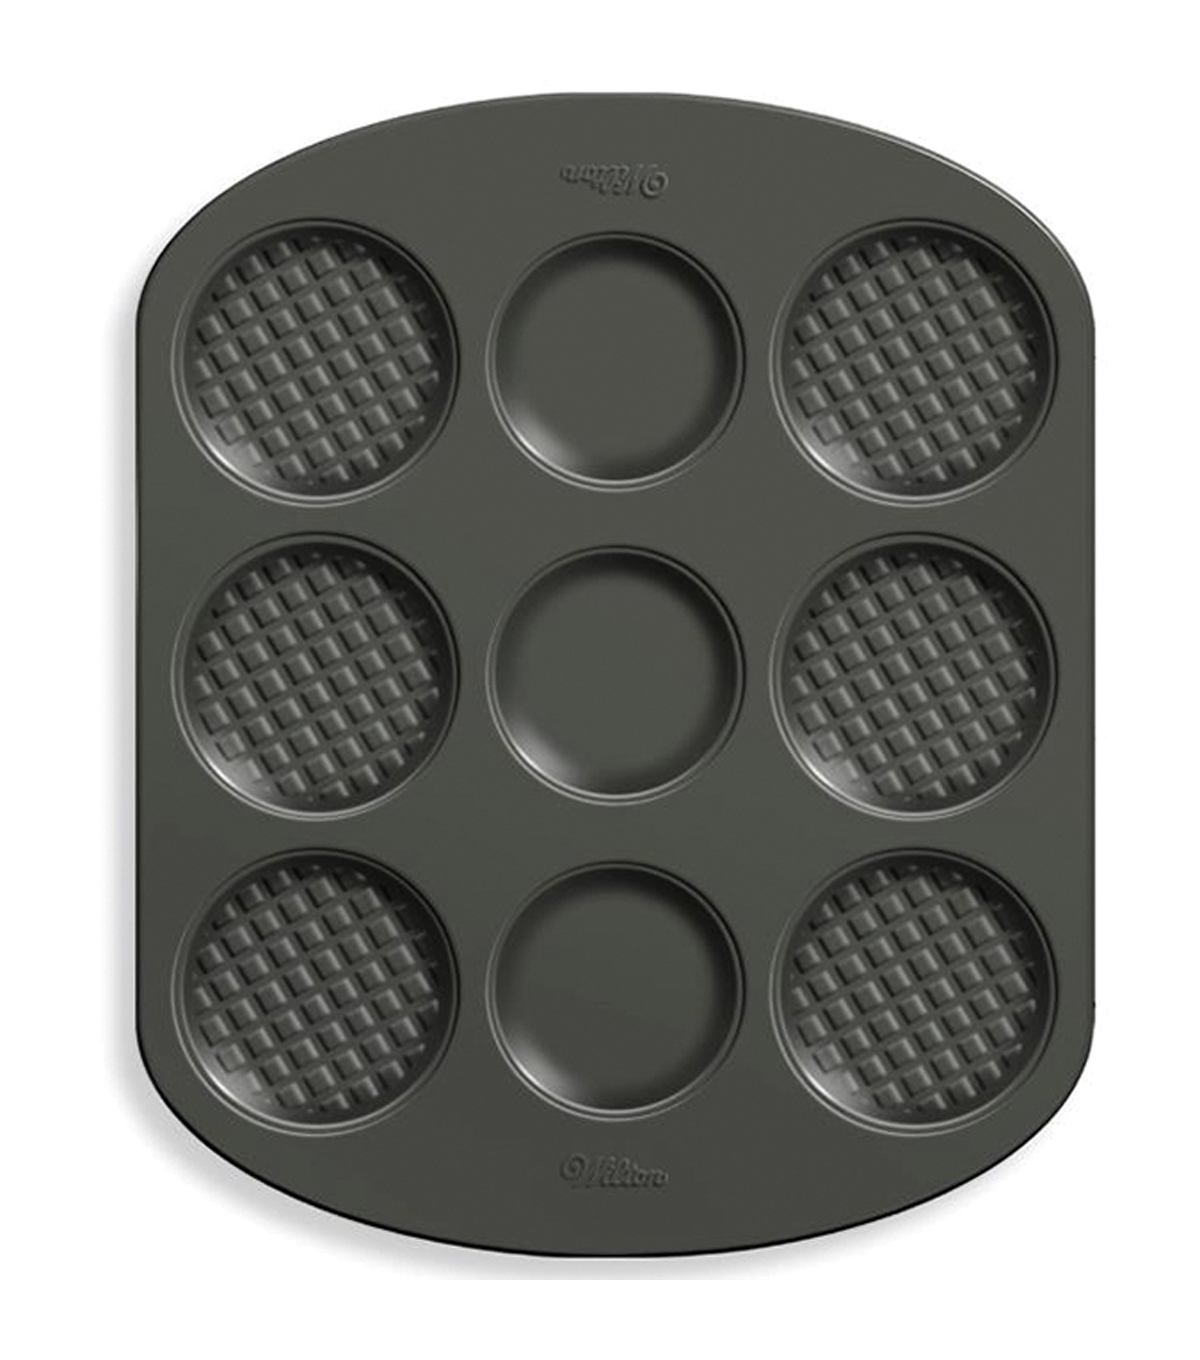 Wilton Breakfast Sandwich Pan-9 Cavity